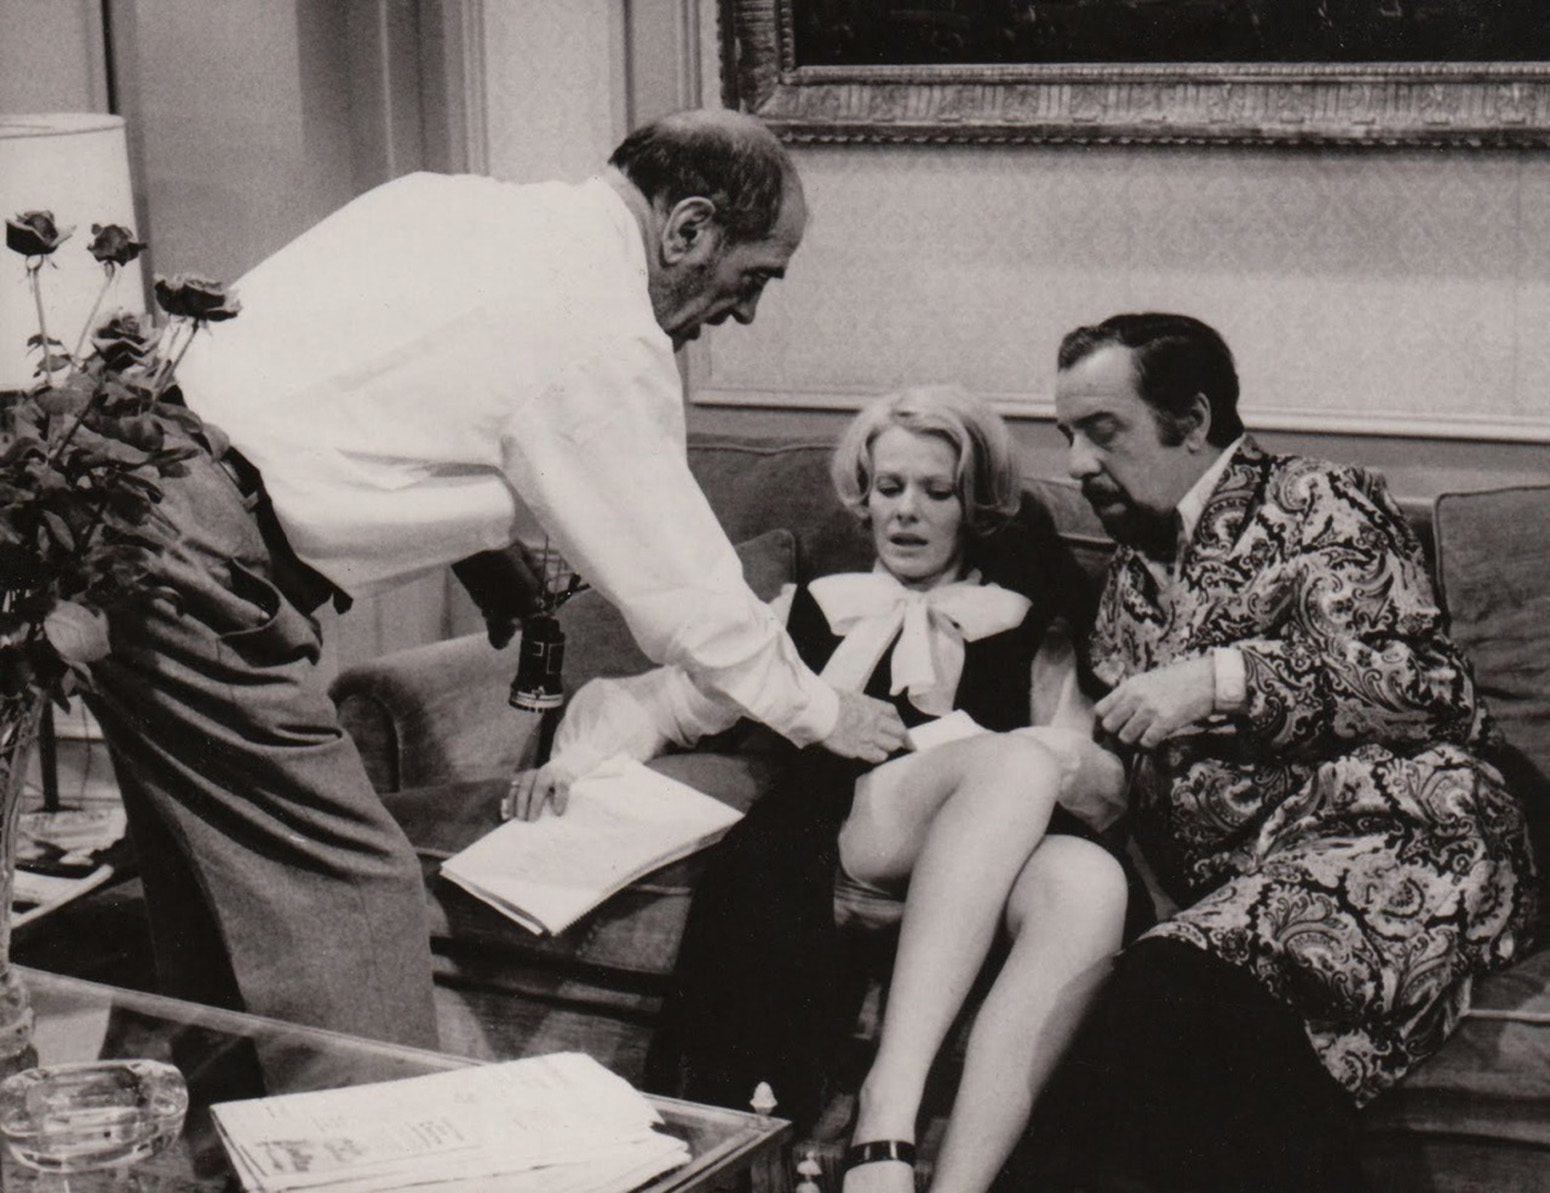 Buñuel (left) at work on The Discreet Charm of the Bourgeoisie.